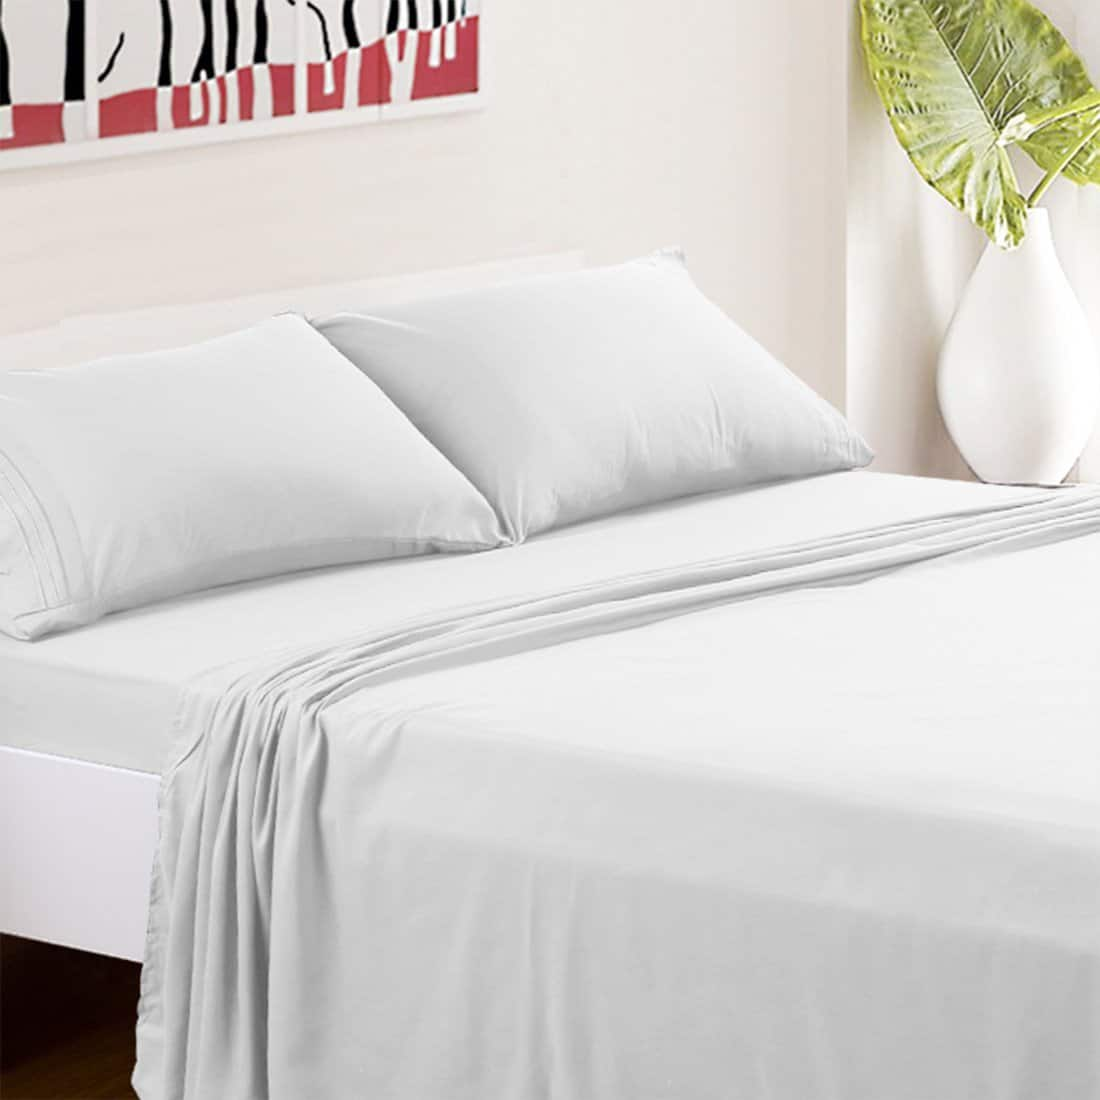 TasteLife 4-piece White Queen Size Hypoallergenic Bed Sheets $11.9 (Free Prime Shipping)